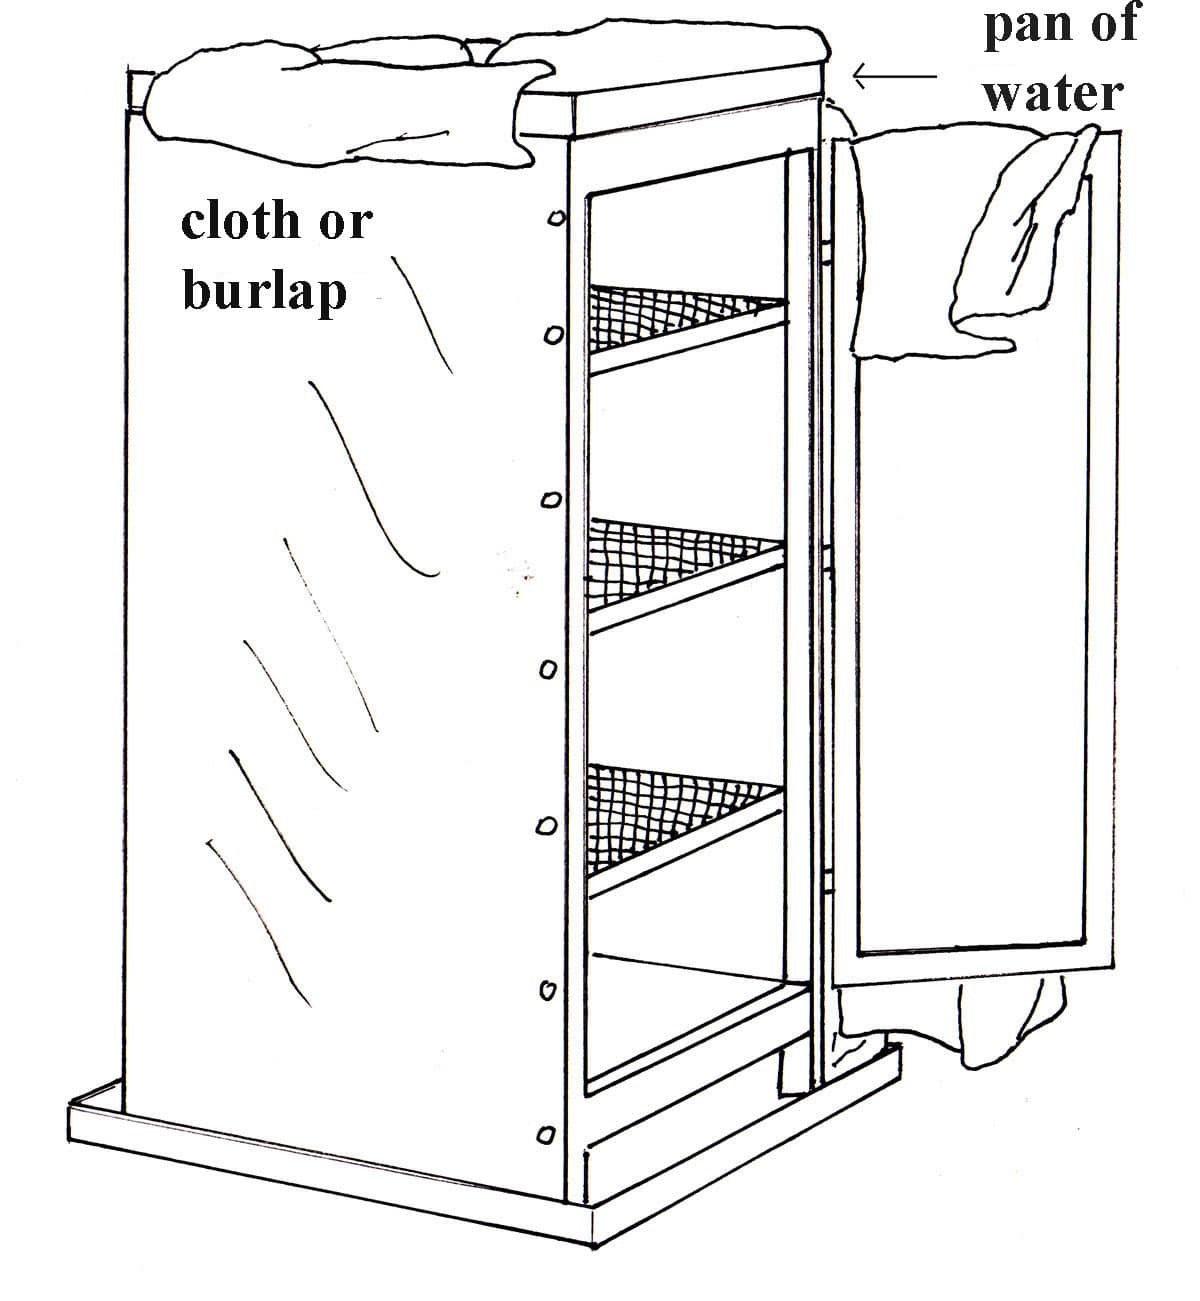 How To Keep Your Food Cold With An Iceless Refrigerator